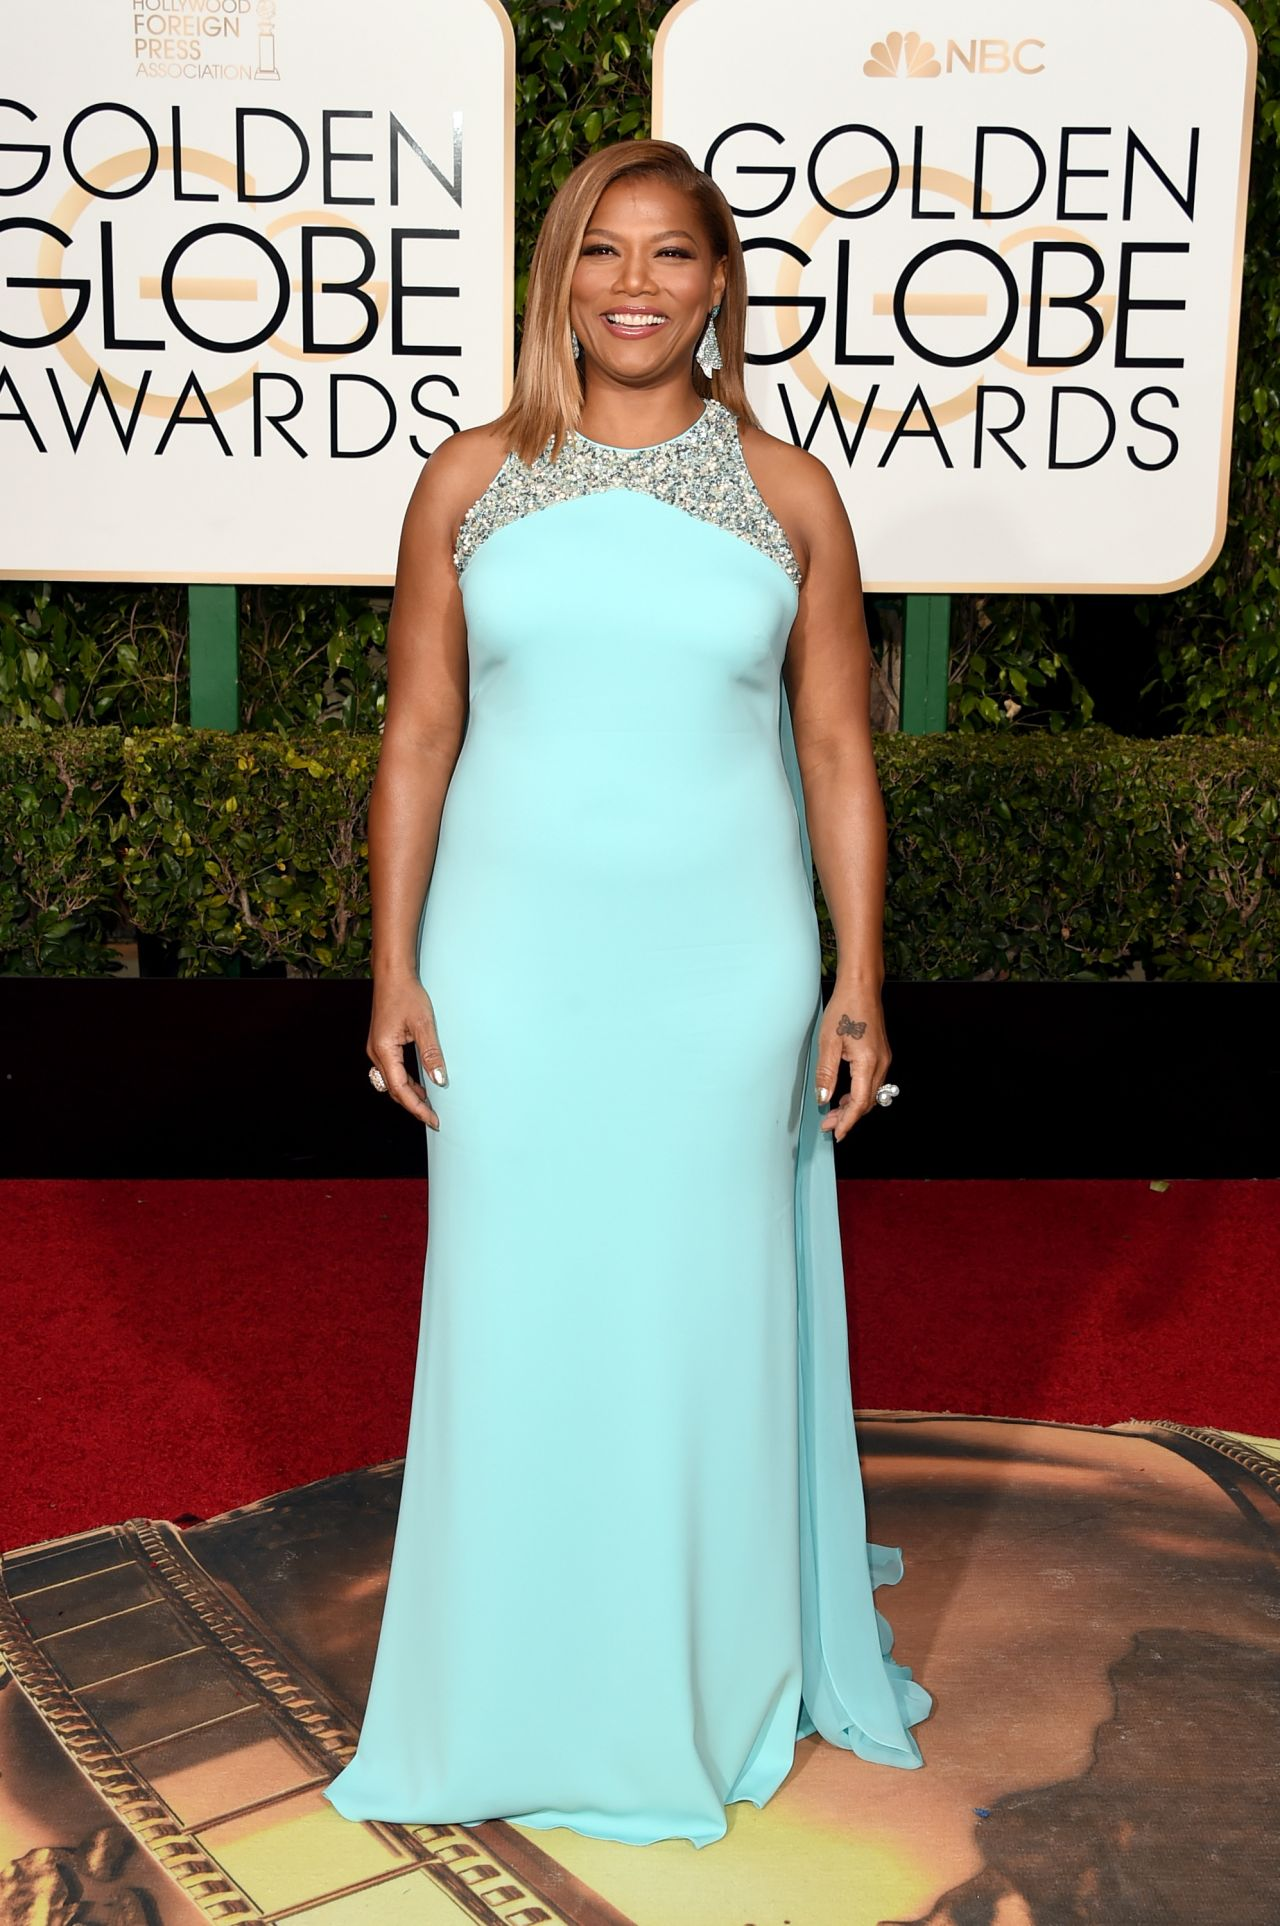 queen-latifah-2016-golden-globe-awards-in-beverly-hills-1